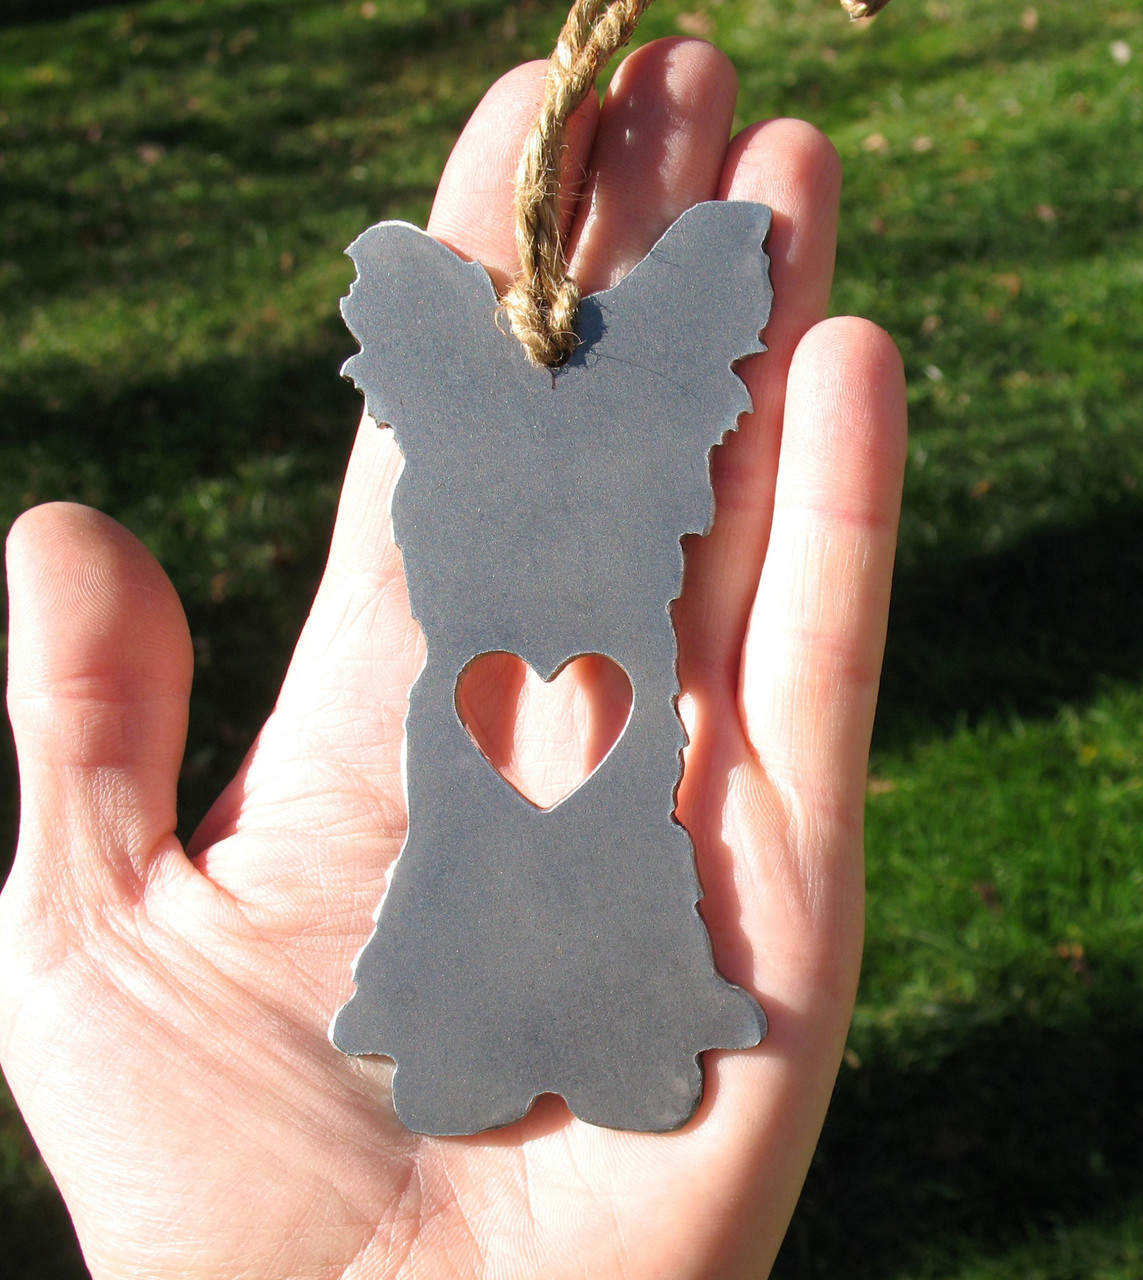 Yorkshire Terrier 3 Pet Loss Gift Ornament - Pet Memorial - Dog Sympathy Remembrance Gift - Metal Dog Christmas Ornament